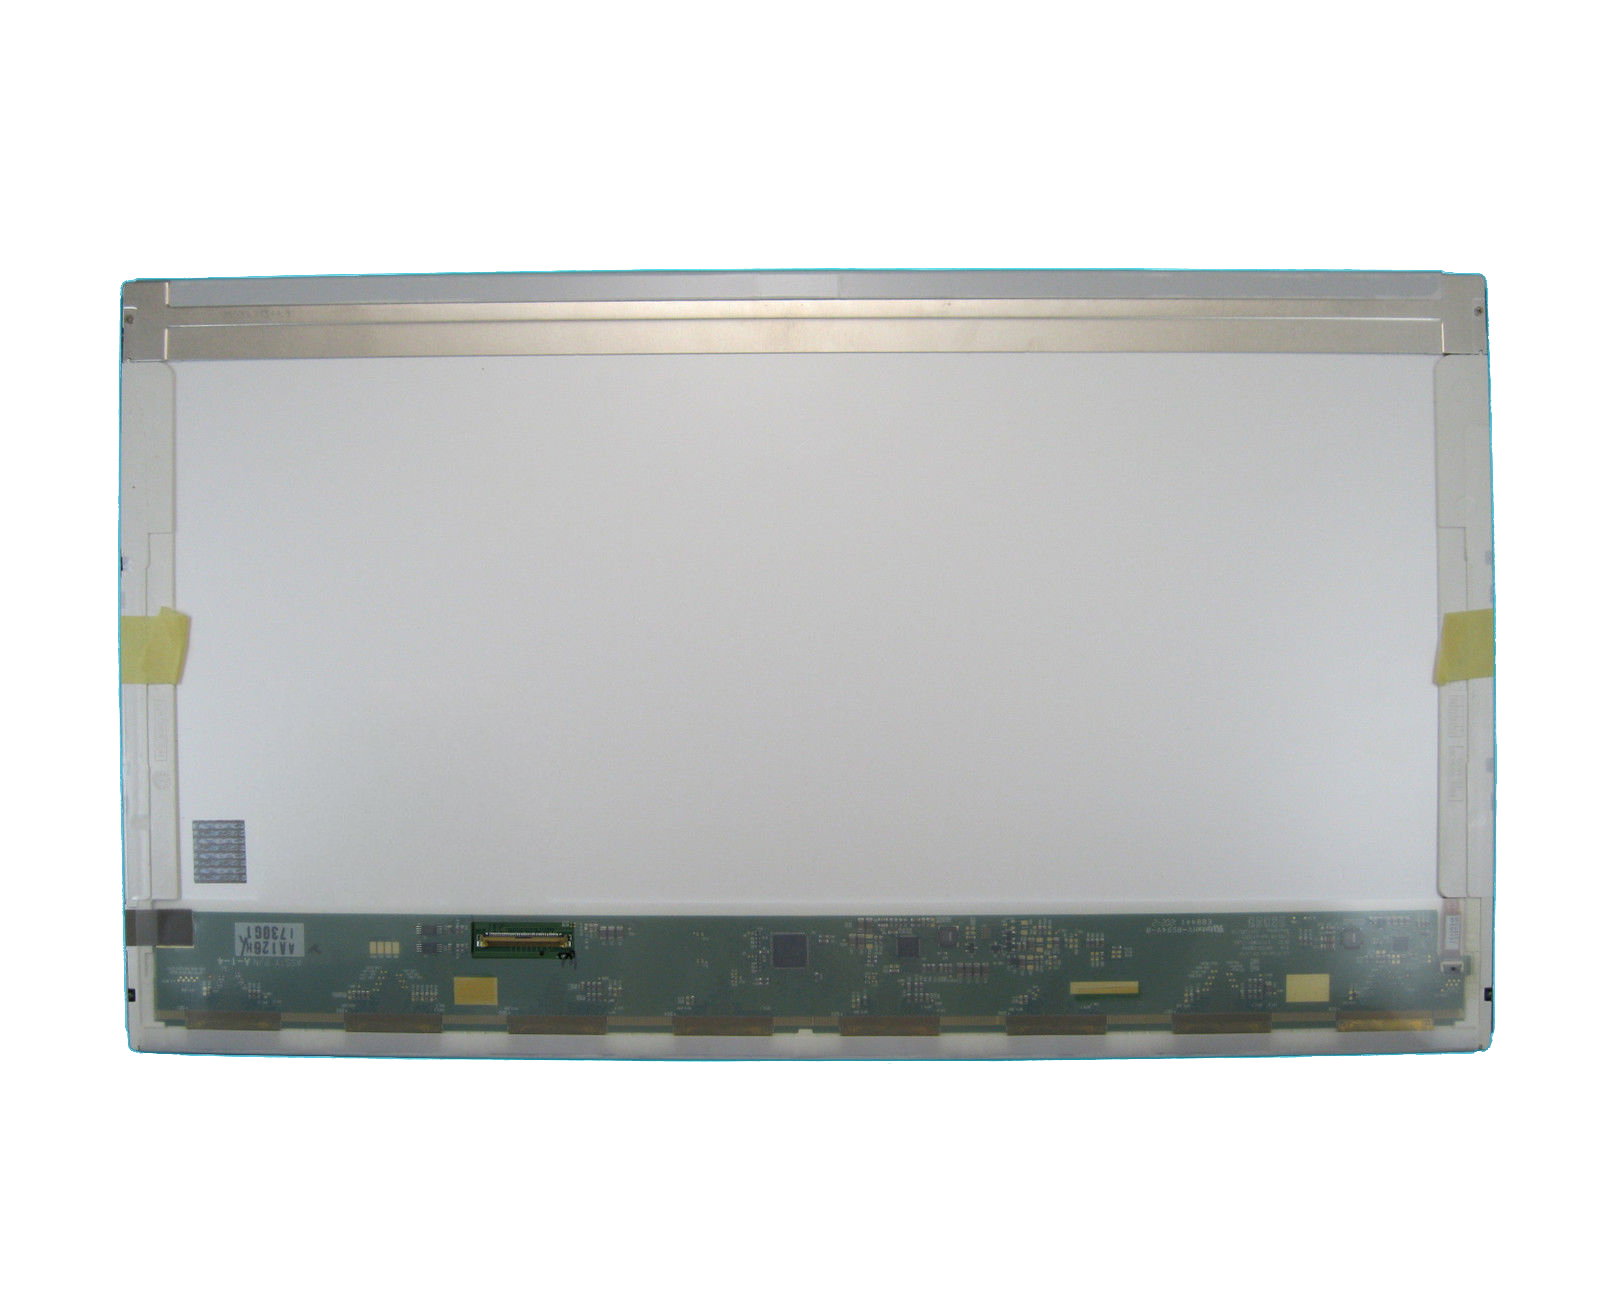 QuYing Laptop LCD Screen for ACER ASPIRE E1-771 E1-771G E1-731 V3-771 V3-771G V3-731 V3-731G P7YE5 SERIES (17.3 1600x900 40pin) quying laptop lcd screen for acer extensa 5235 as5551 series 15 6 inch 1366x768 40pin tk